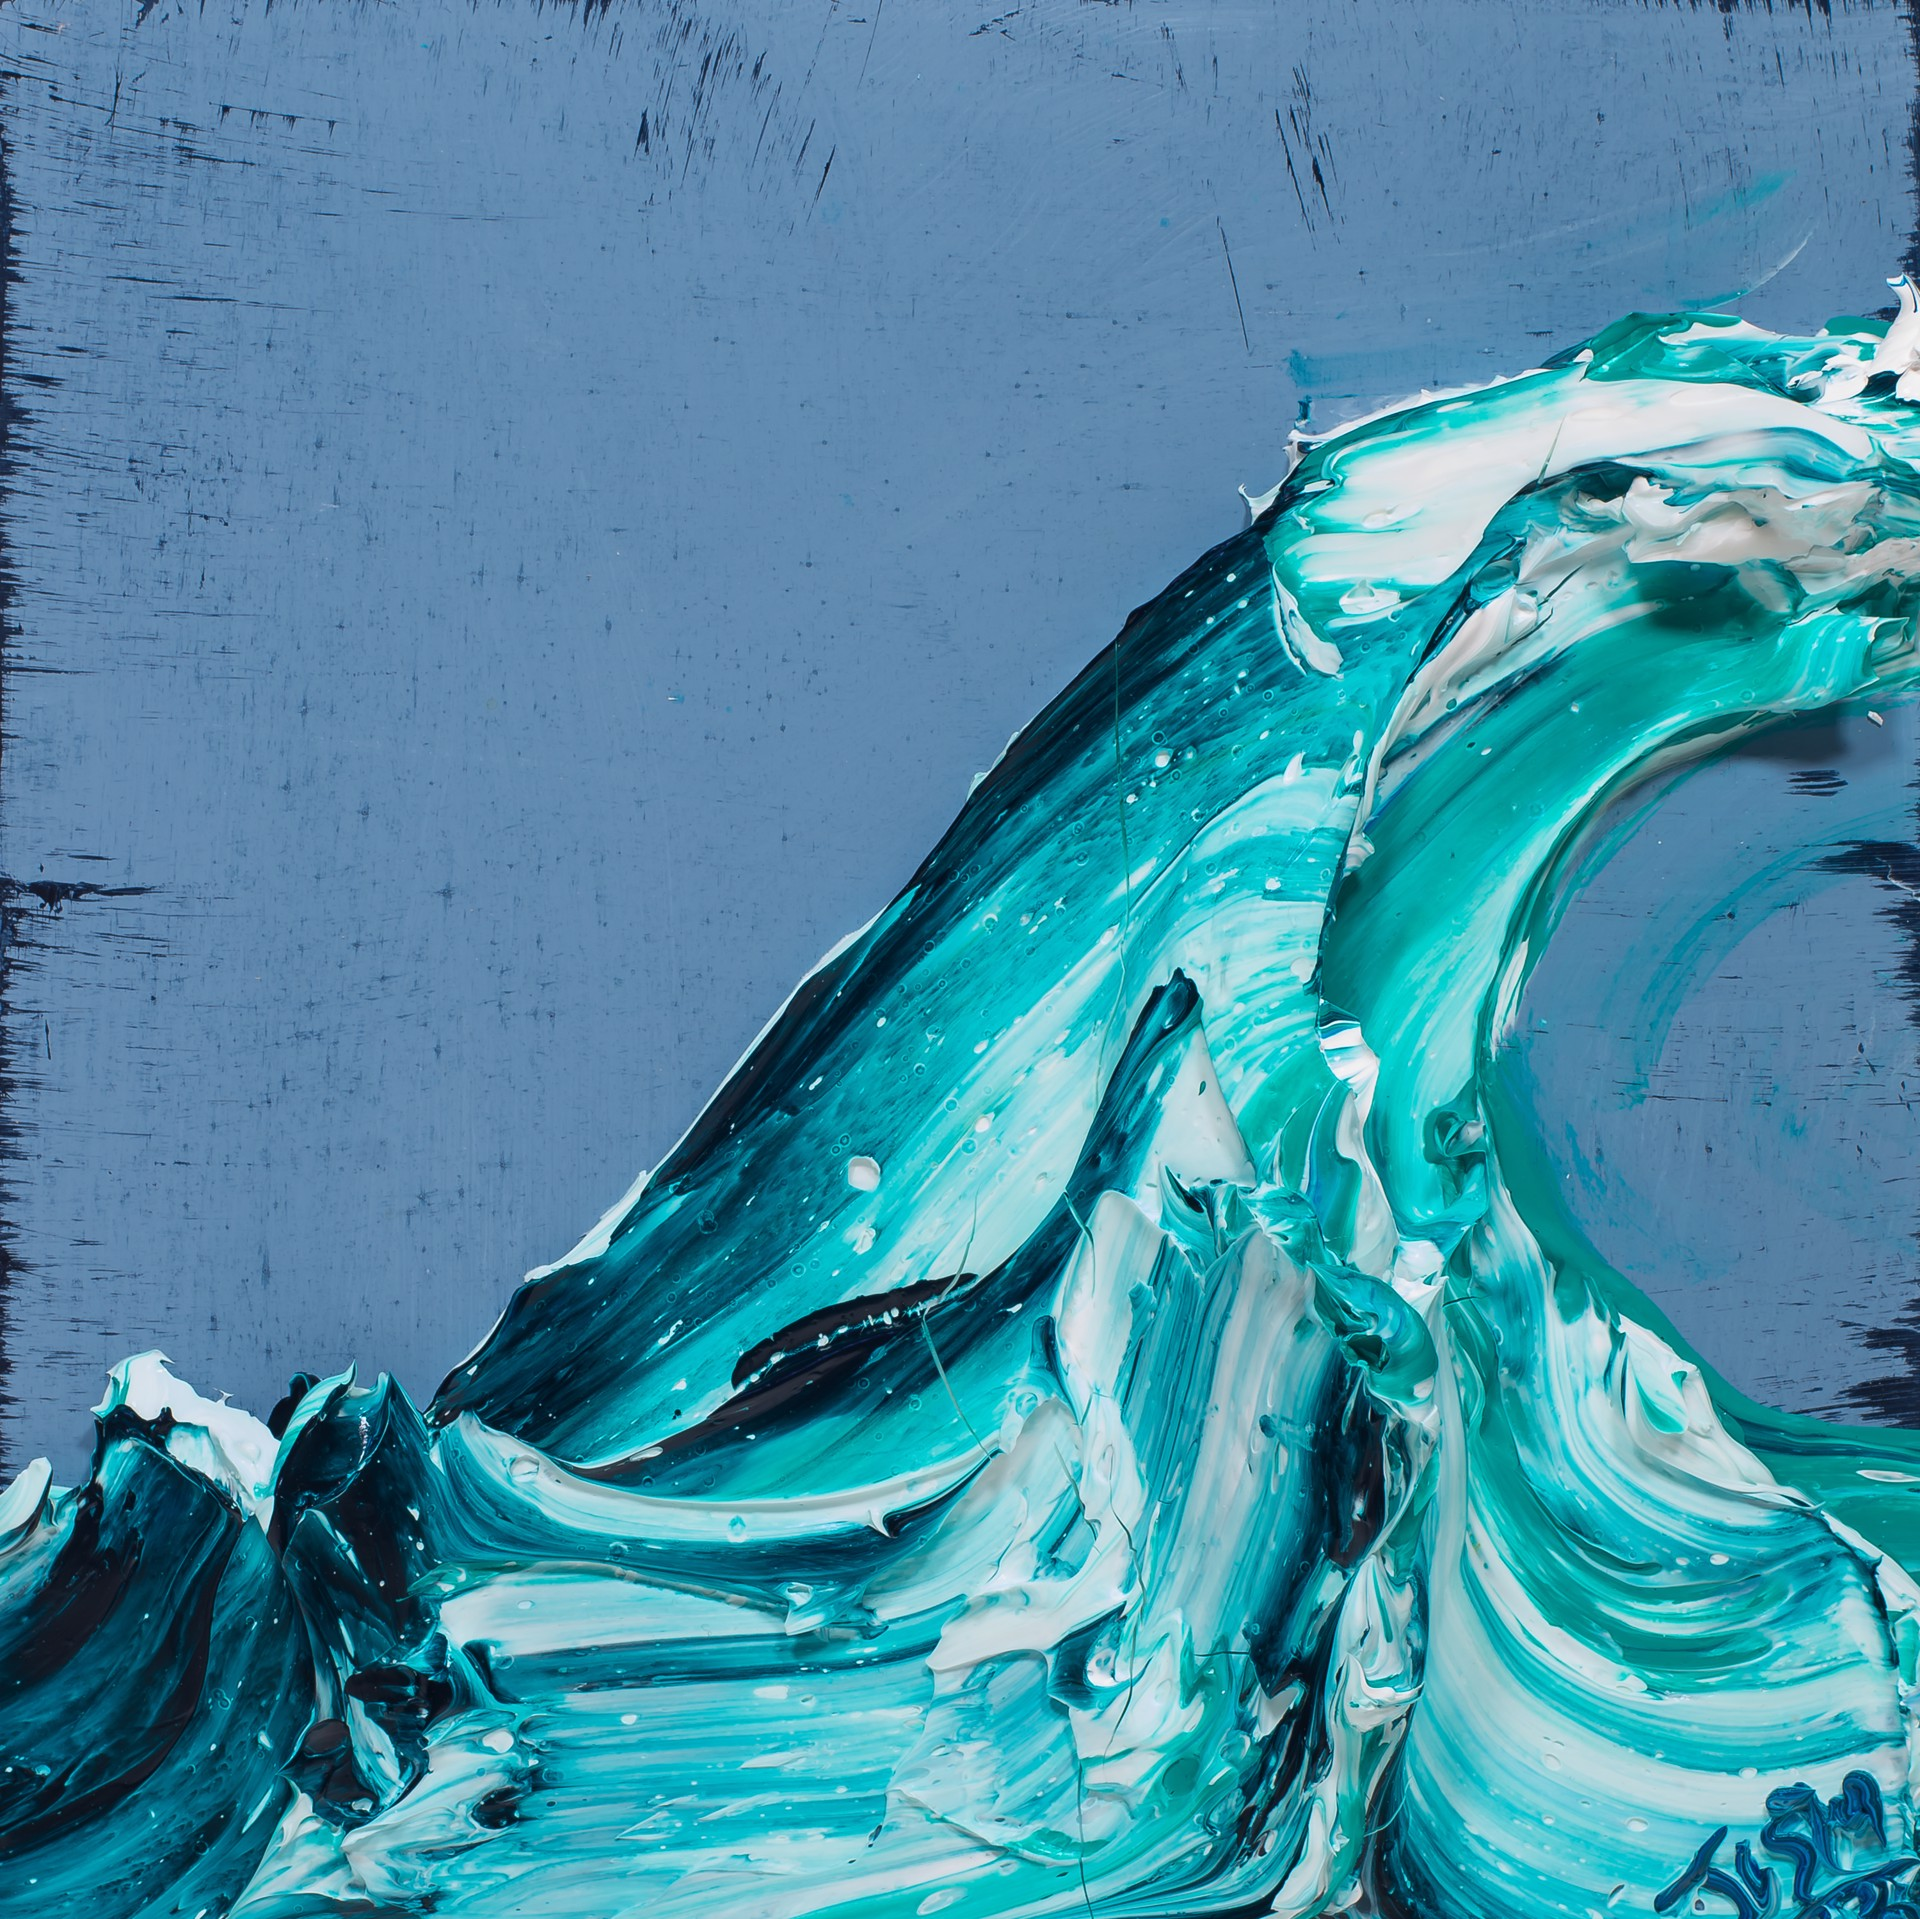 WAVE WV12X12-2019-134 by Justin Gaffrey